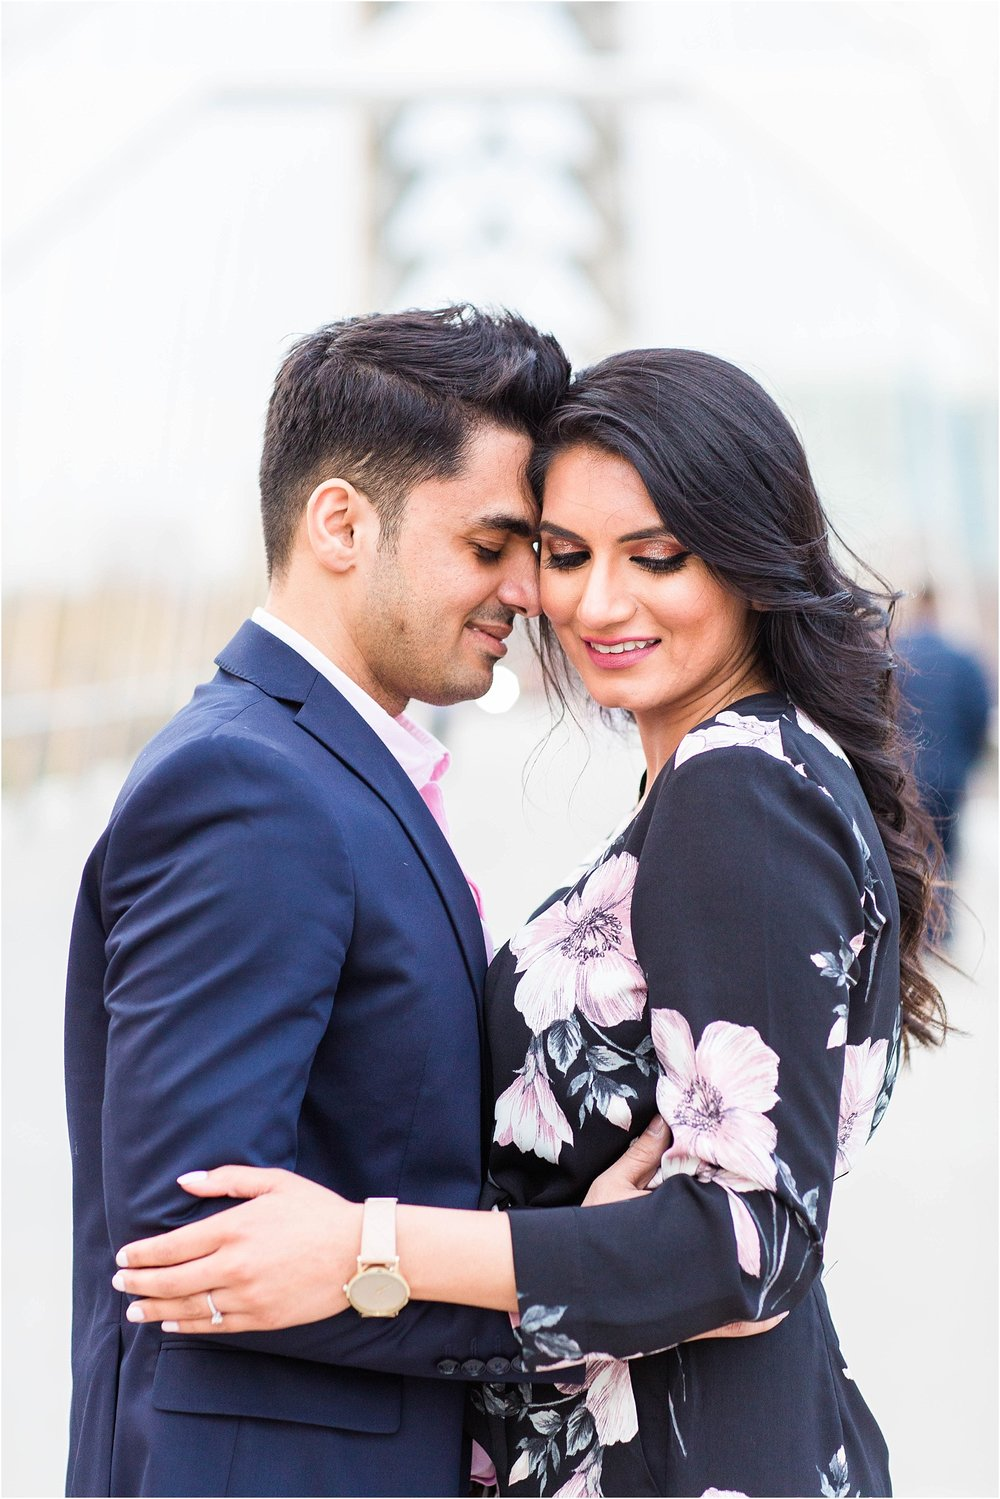 Ryerson-University-Humber-Bay-Bridge-Engagement-Session-Toronto-Mississauga-Brampton-Scarborough-GTA-Pakistani-Indian-Wedding-Engagement-Photographer-Photography_0033.jpg